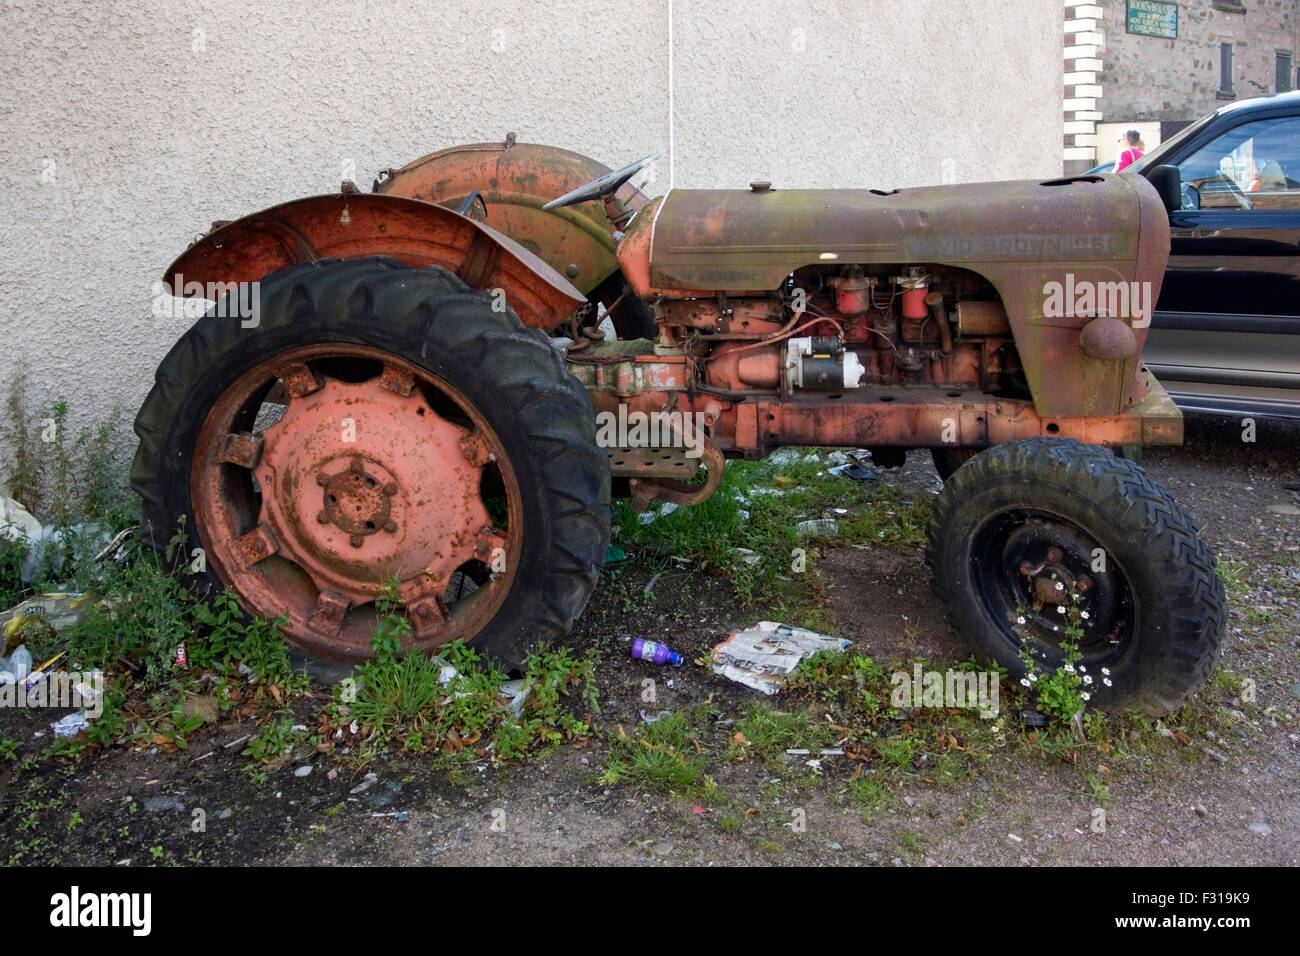 Dilapidated 1960's David Brown 950 Model Tractor - Stock Image